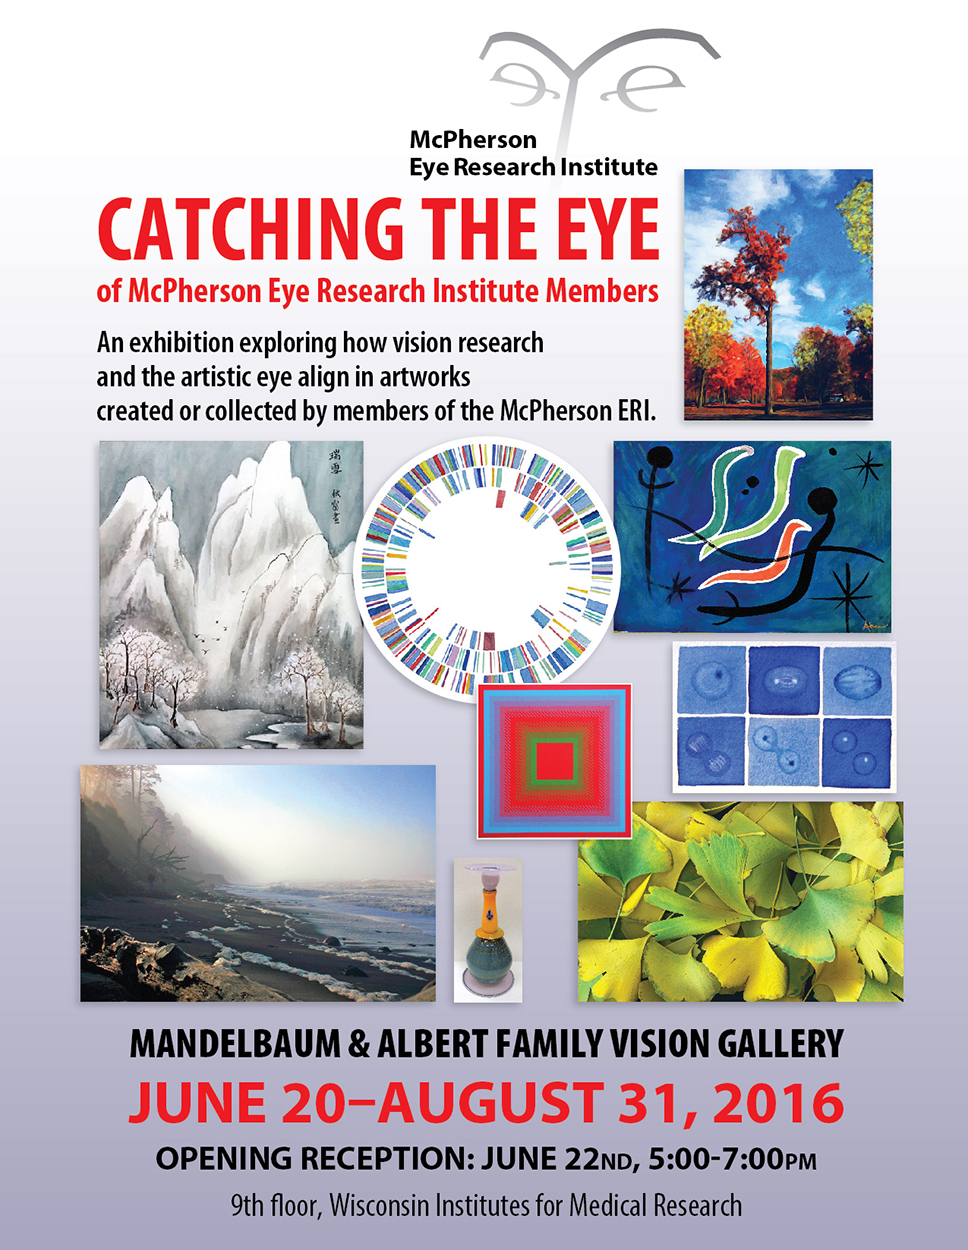 Summer Vision Gallery 2016 Poster